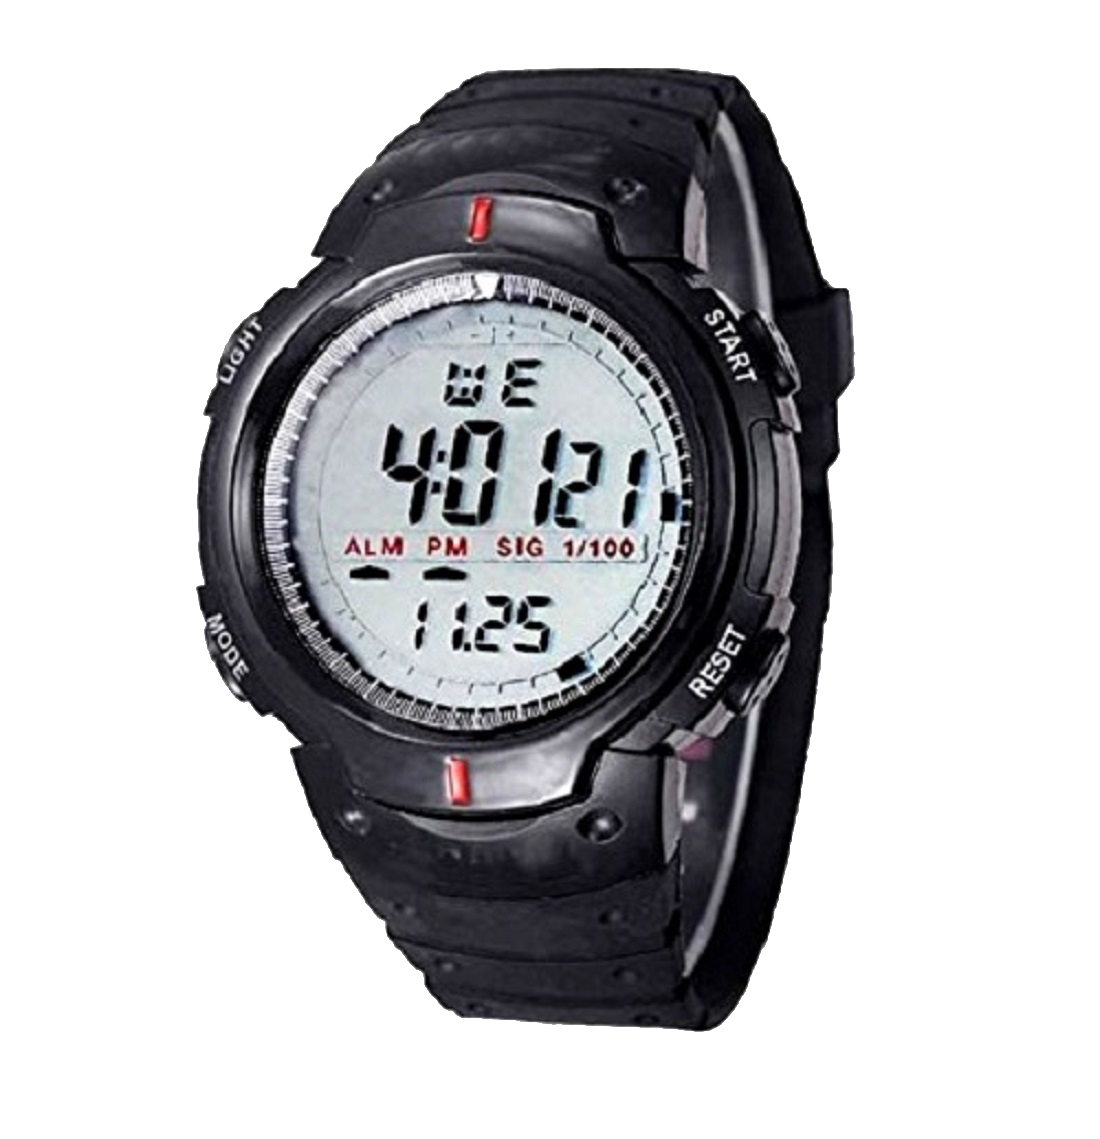 EDEAL Sports Digital Black Dial Watch with Stopwatch, Alarm For Men's and Boy's   EDLEDUW007